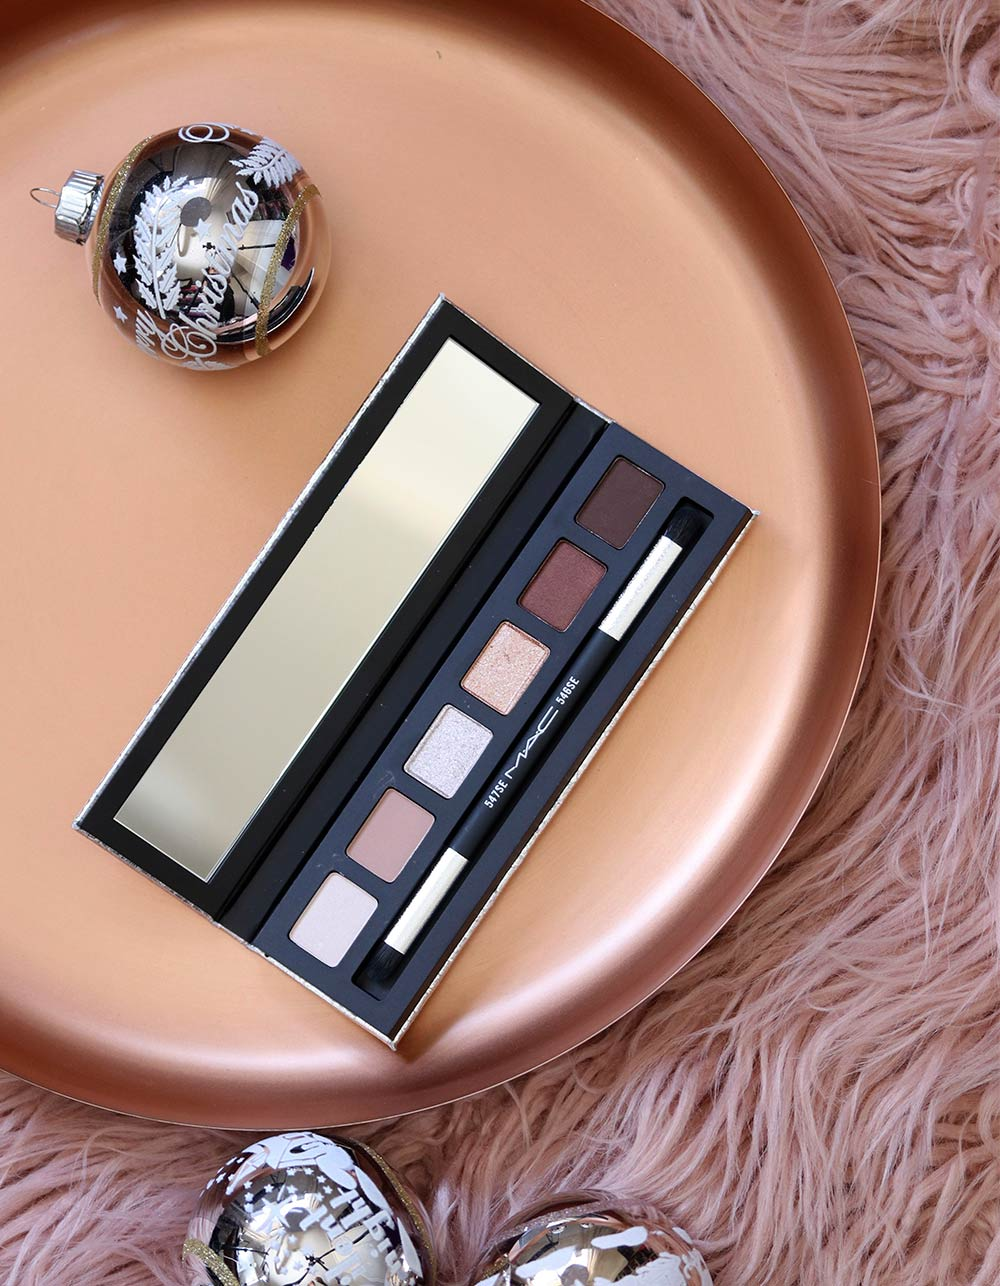 mac snow ball eye compact rose gold